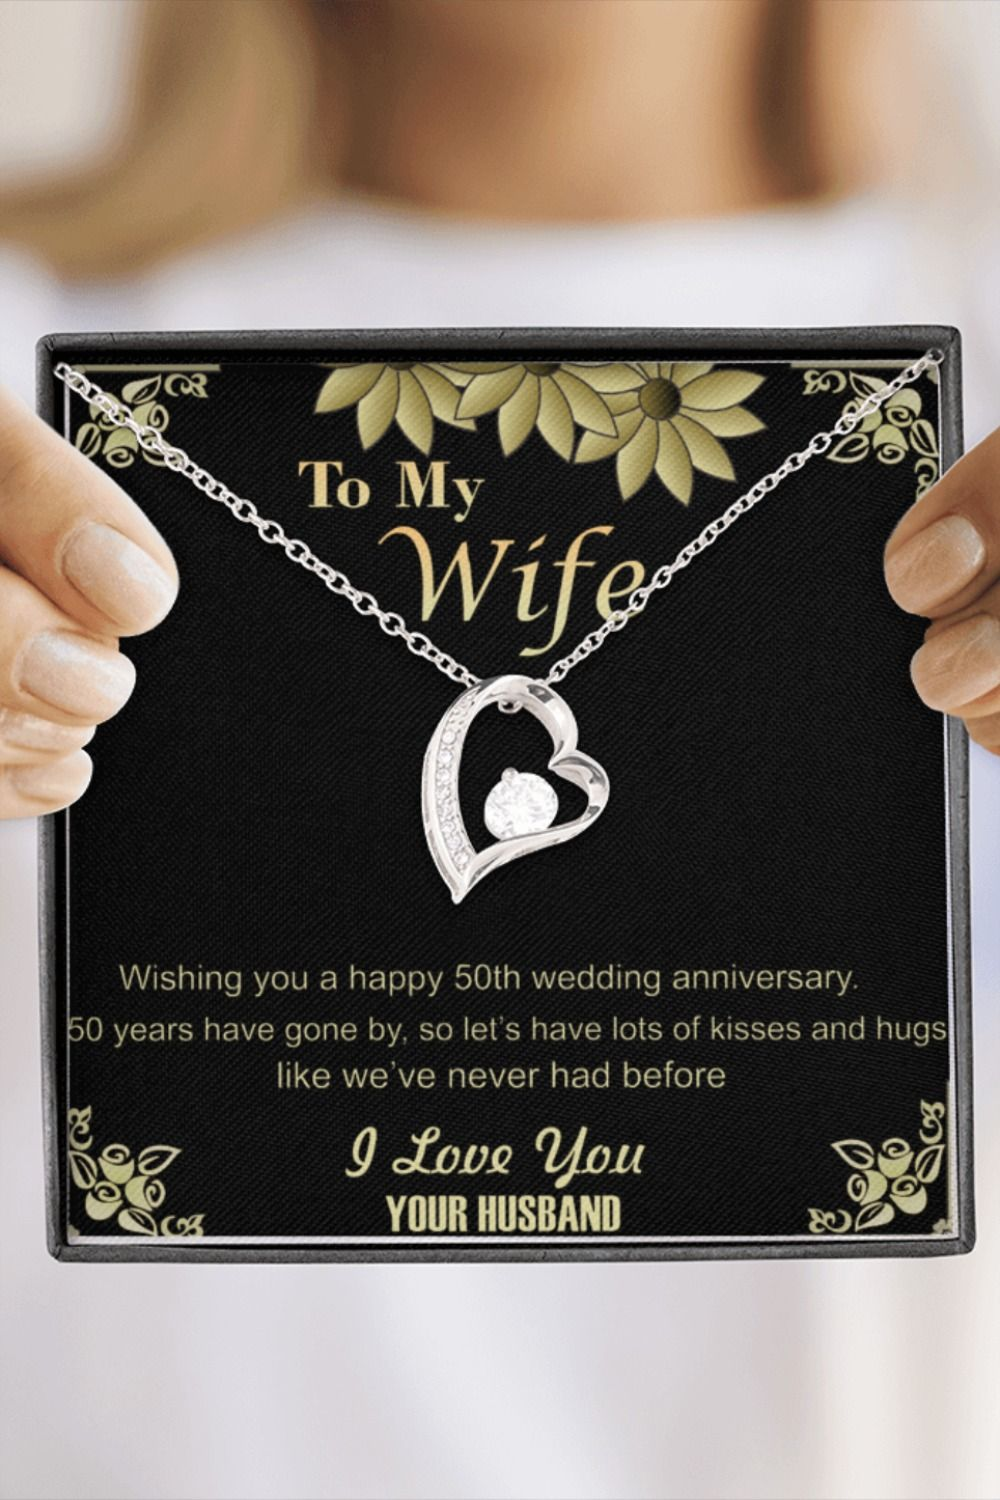 50th Golden Wedding Anniversary Pendant Necklace Gift For Wife Her Gold Present Jewelry Ideas In 2020 50th Wedding Anniversary 50 Golden Wedding Anniversary Marriage Anniversary Gifts